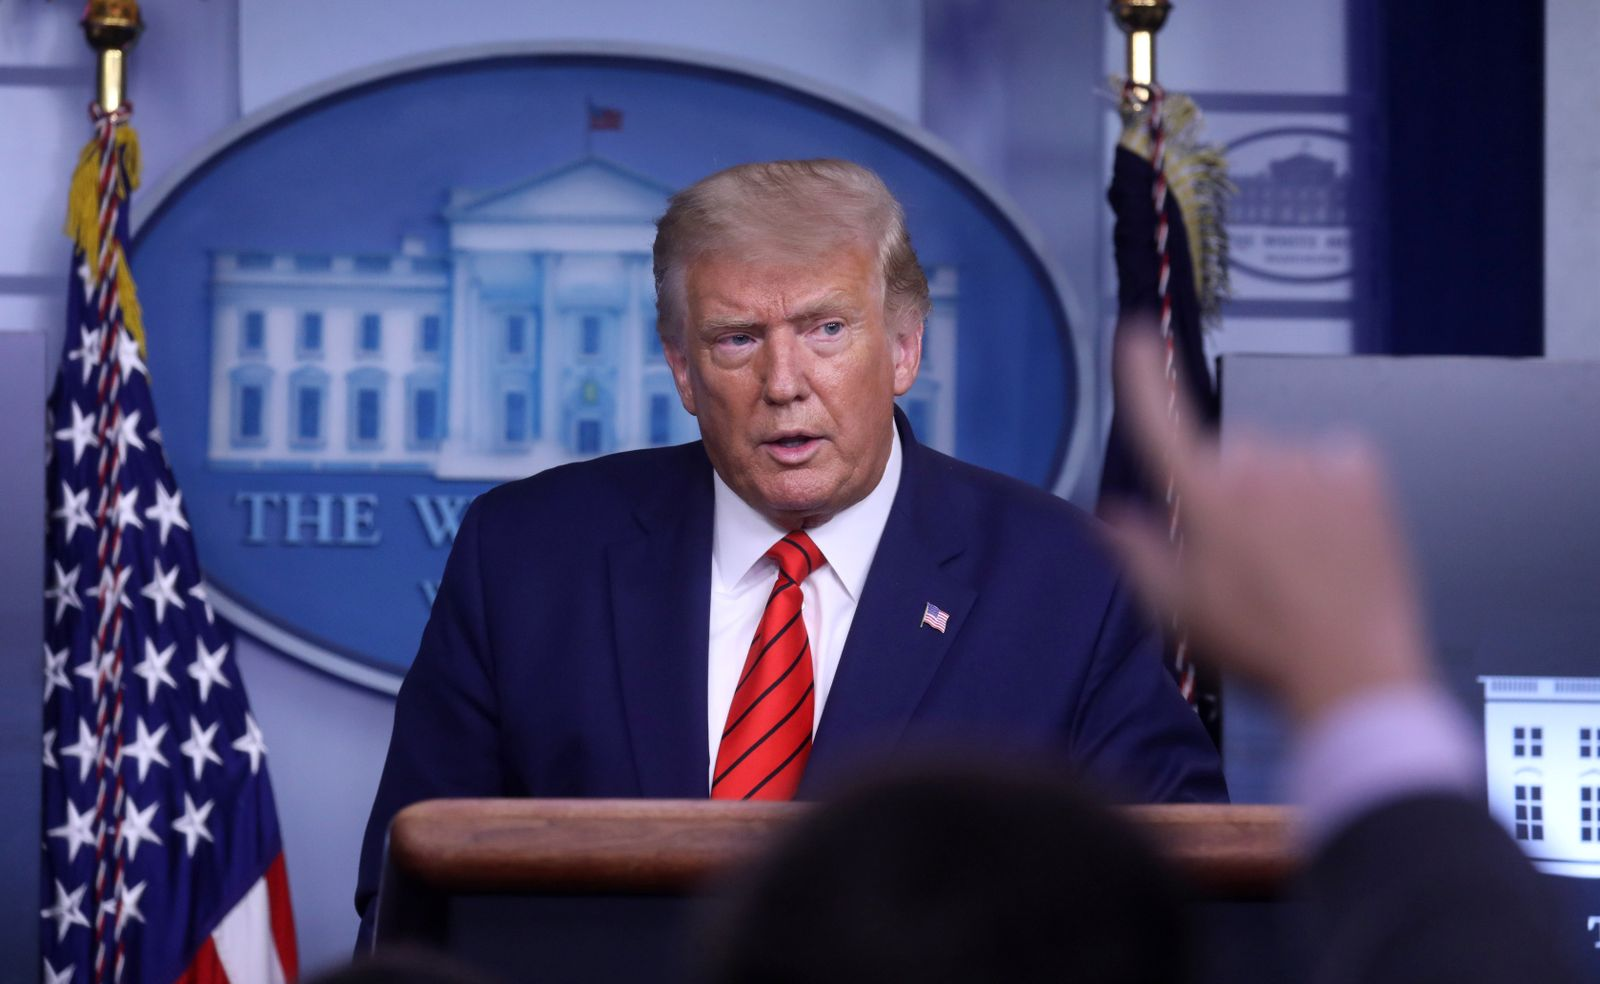 U.S. President Donald Trump conducts press conference in White House.